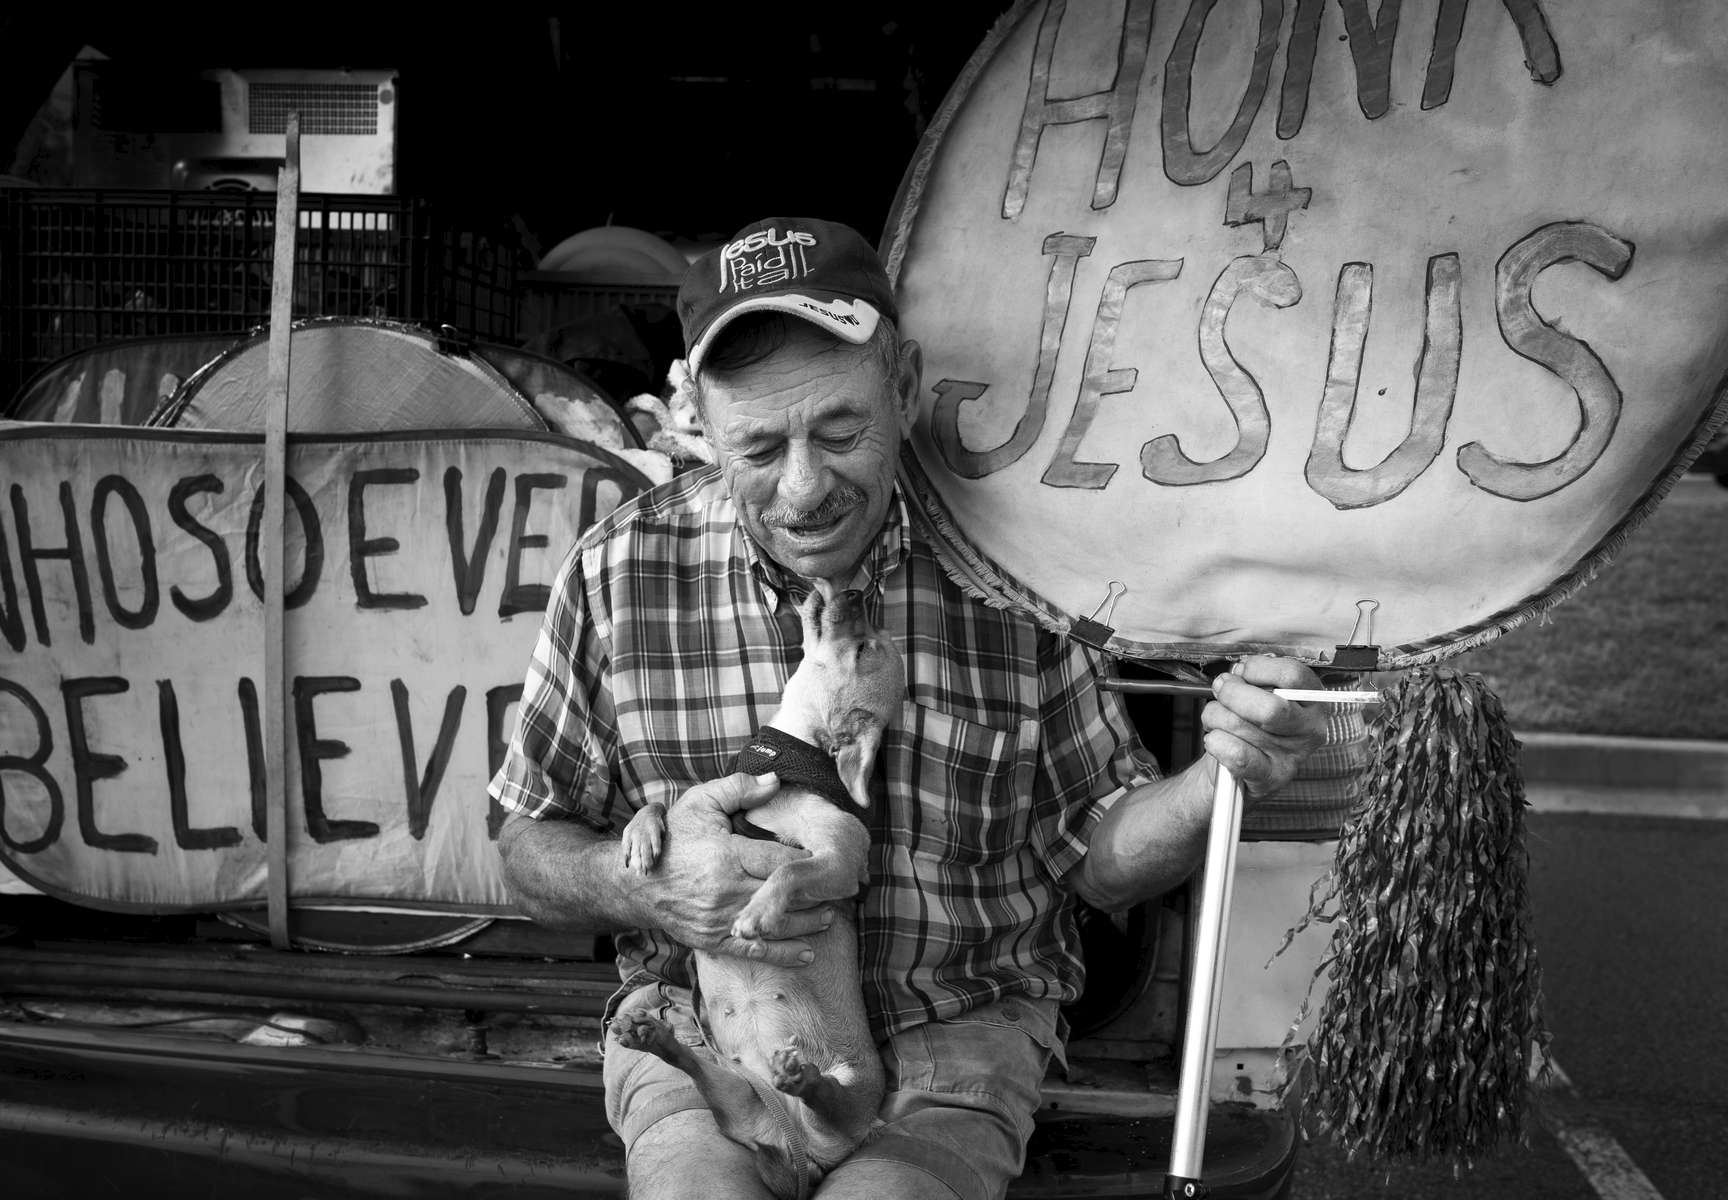 "George Kranock, a self-described traveling evangelist, kisses his dog Tulip at the rear of his aging Ford van during a break from his street evangelism in Kennesaw, Ga.  Kranock, 74, originally from New Jersey, uses his meager Social Security benefits to pay for his gas and lives on day-old sandwiches from grocery stores as they travel throughout the South, standing along busy highways to hold his 'Honk 4 Jesus' sign.  He seeks no donations or financial support. ""I have a special love for Georgia. People here really do love the Lord,"" he said. ""This is my calling, to let people know Jesus loves them."""